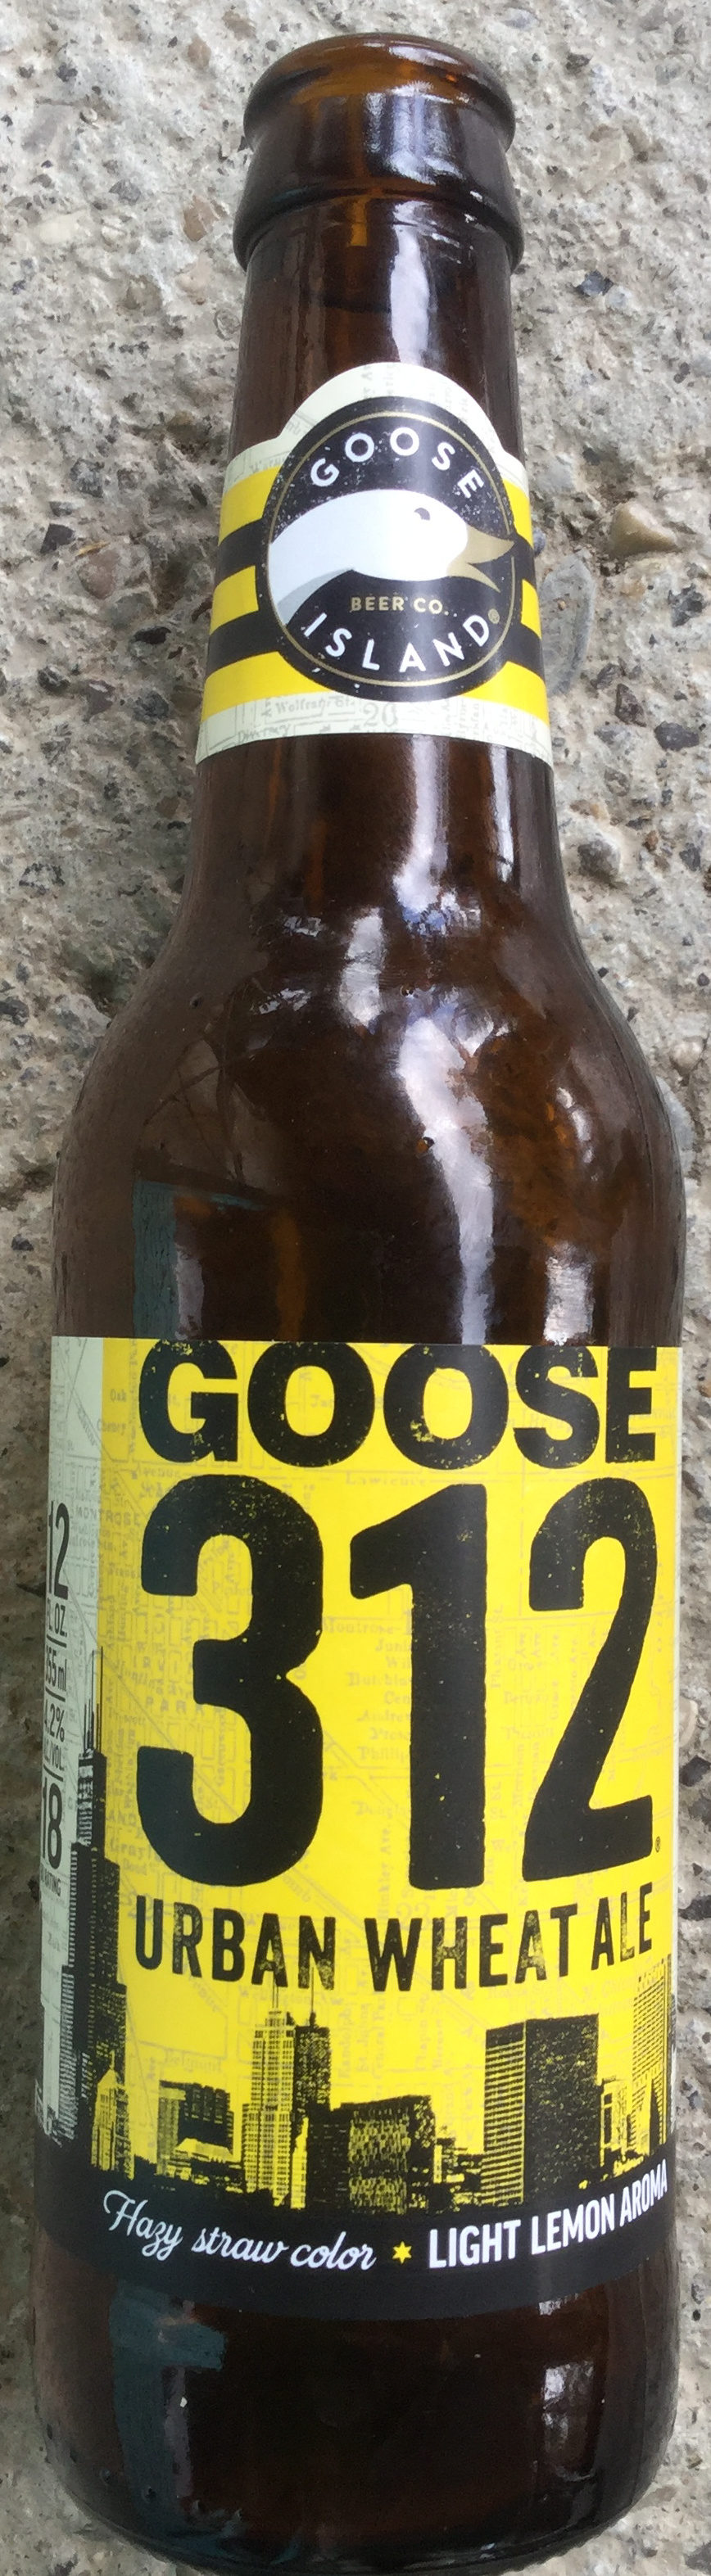 Goose 312 - Product